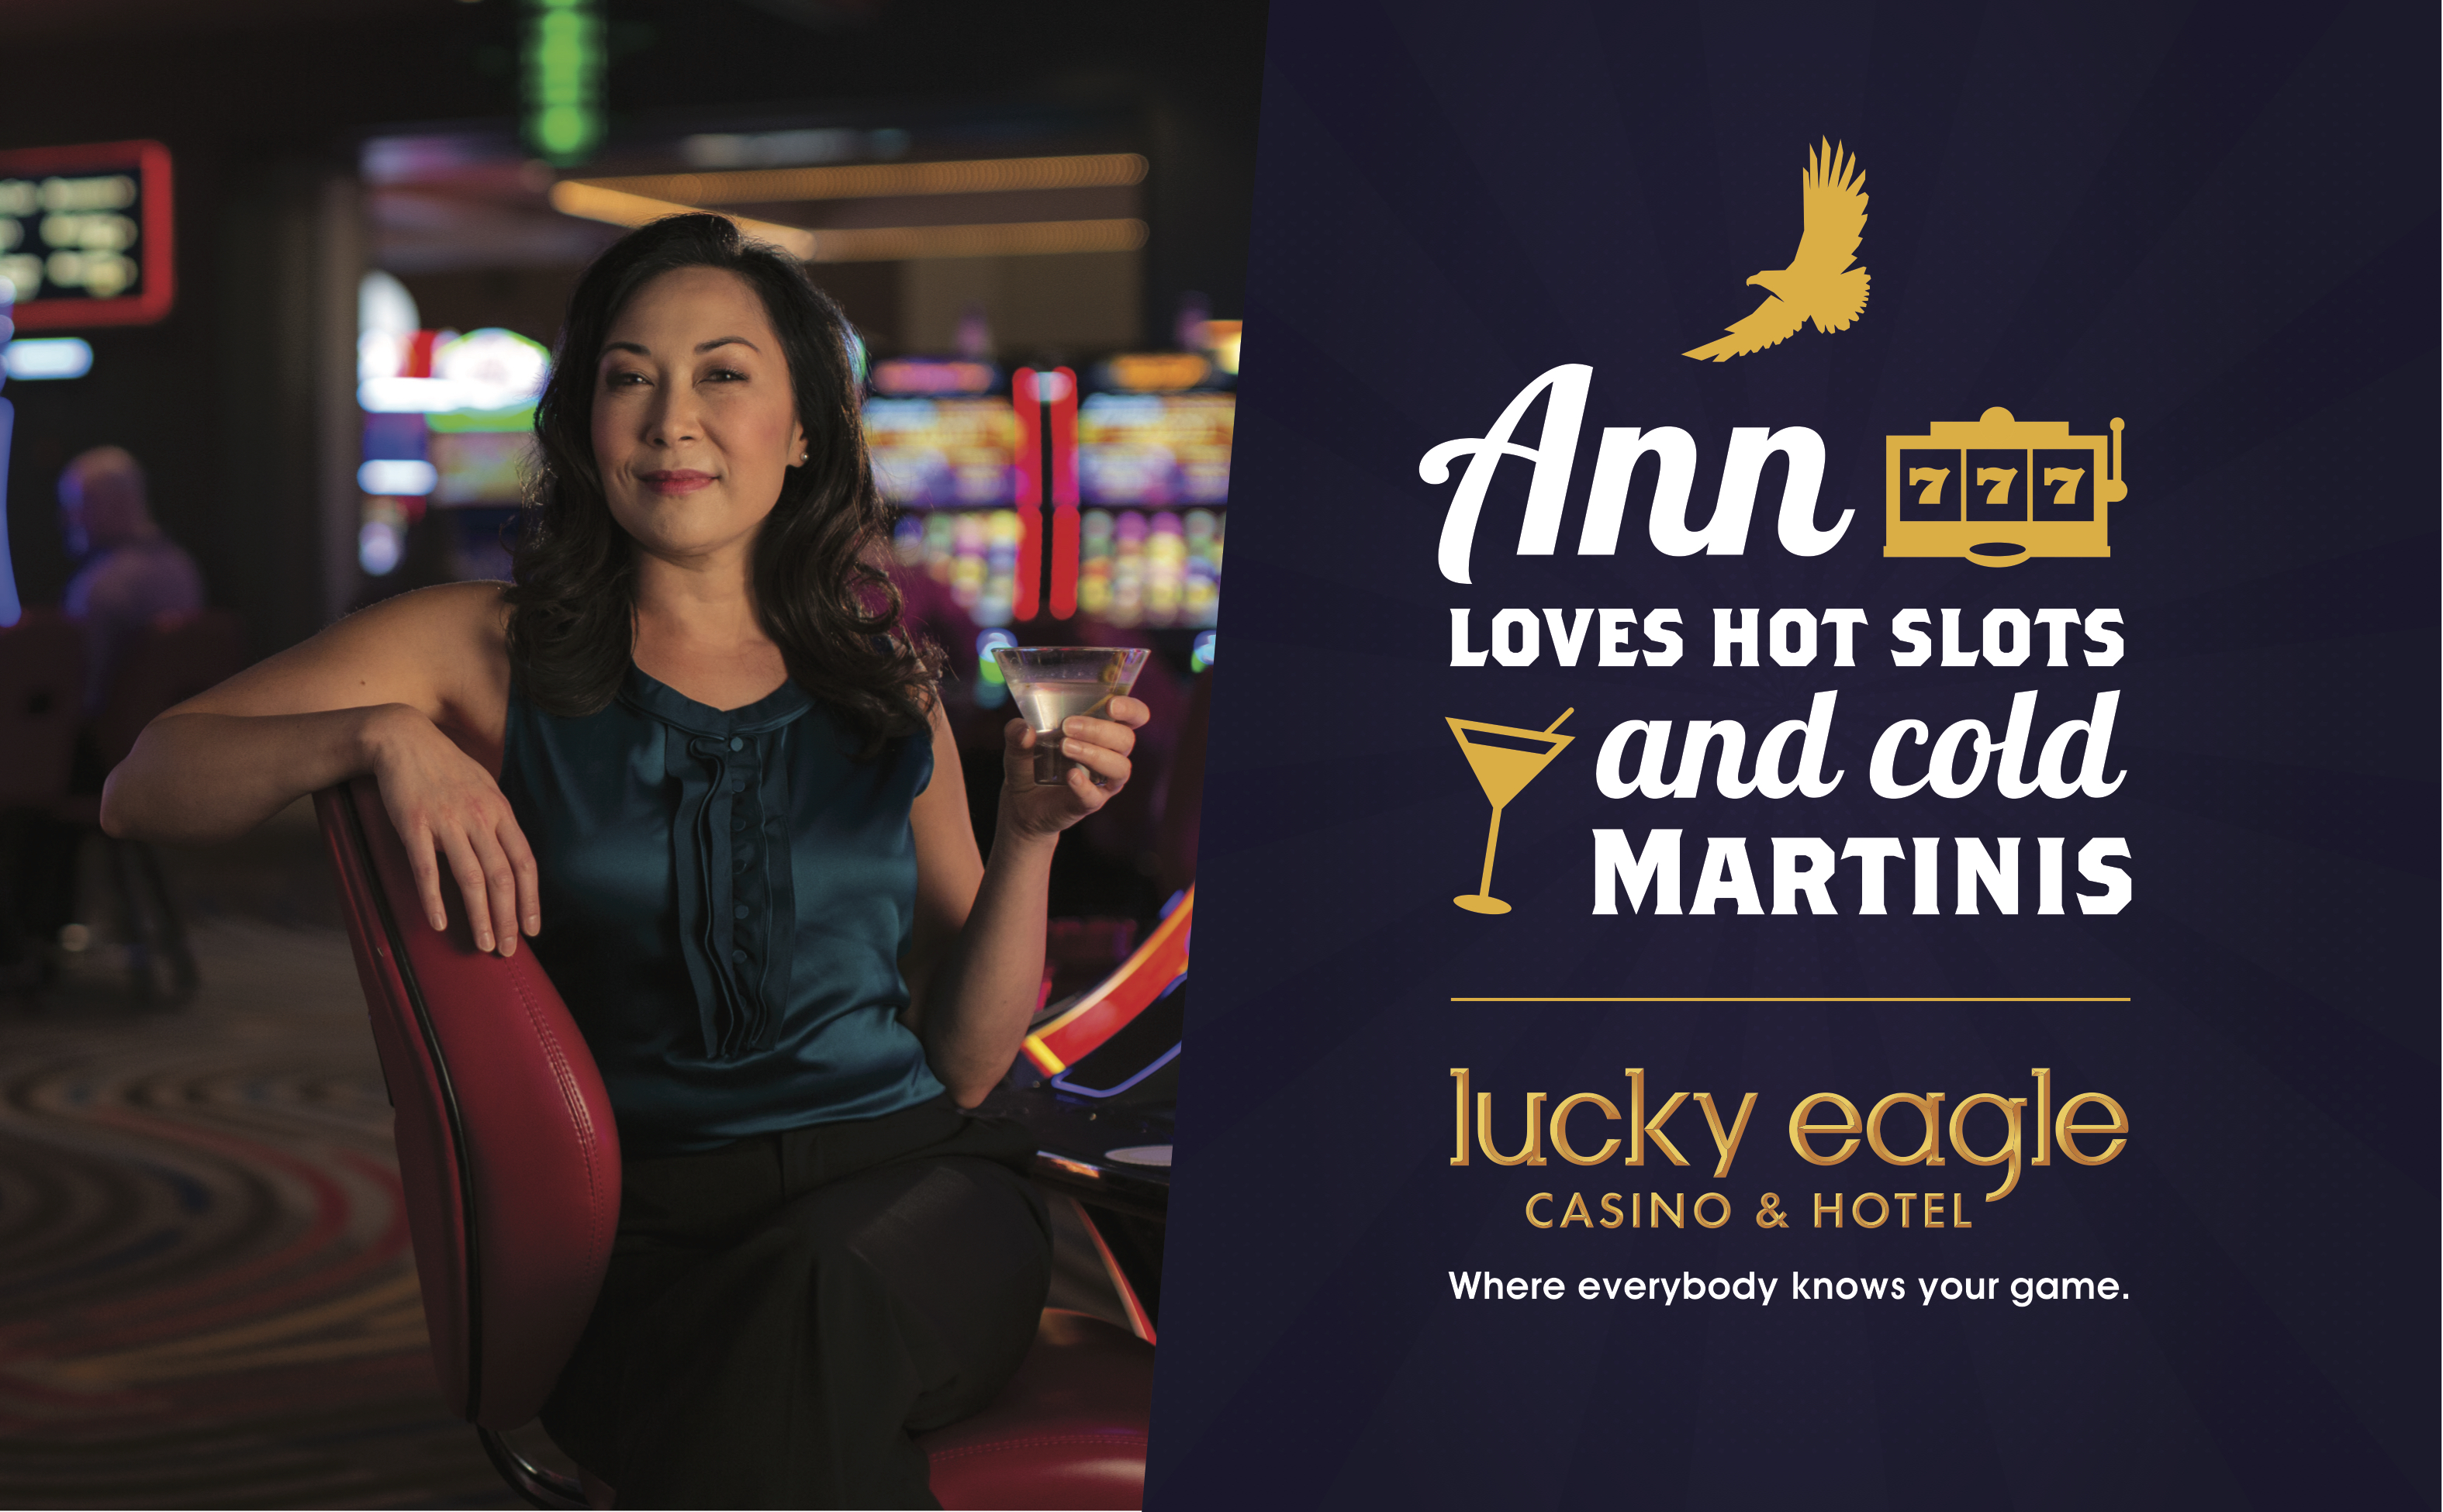 Lucky Eagle Casino: Ann Print Ad